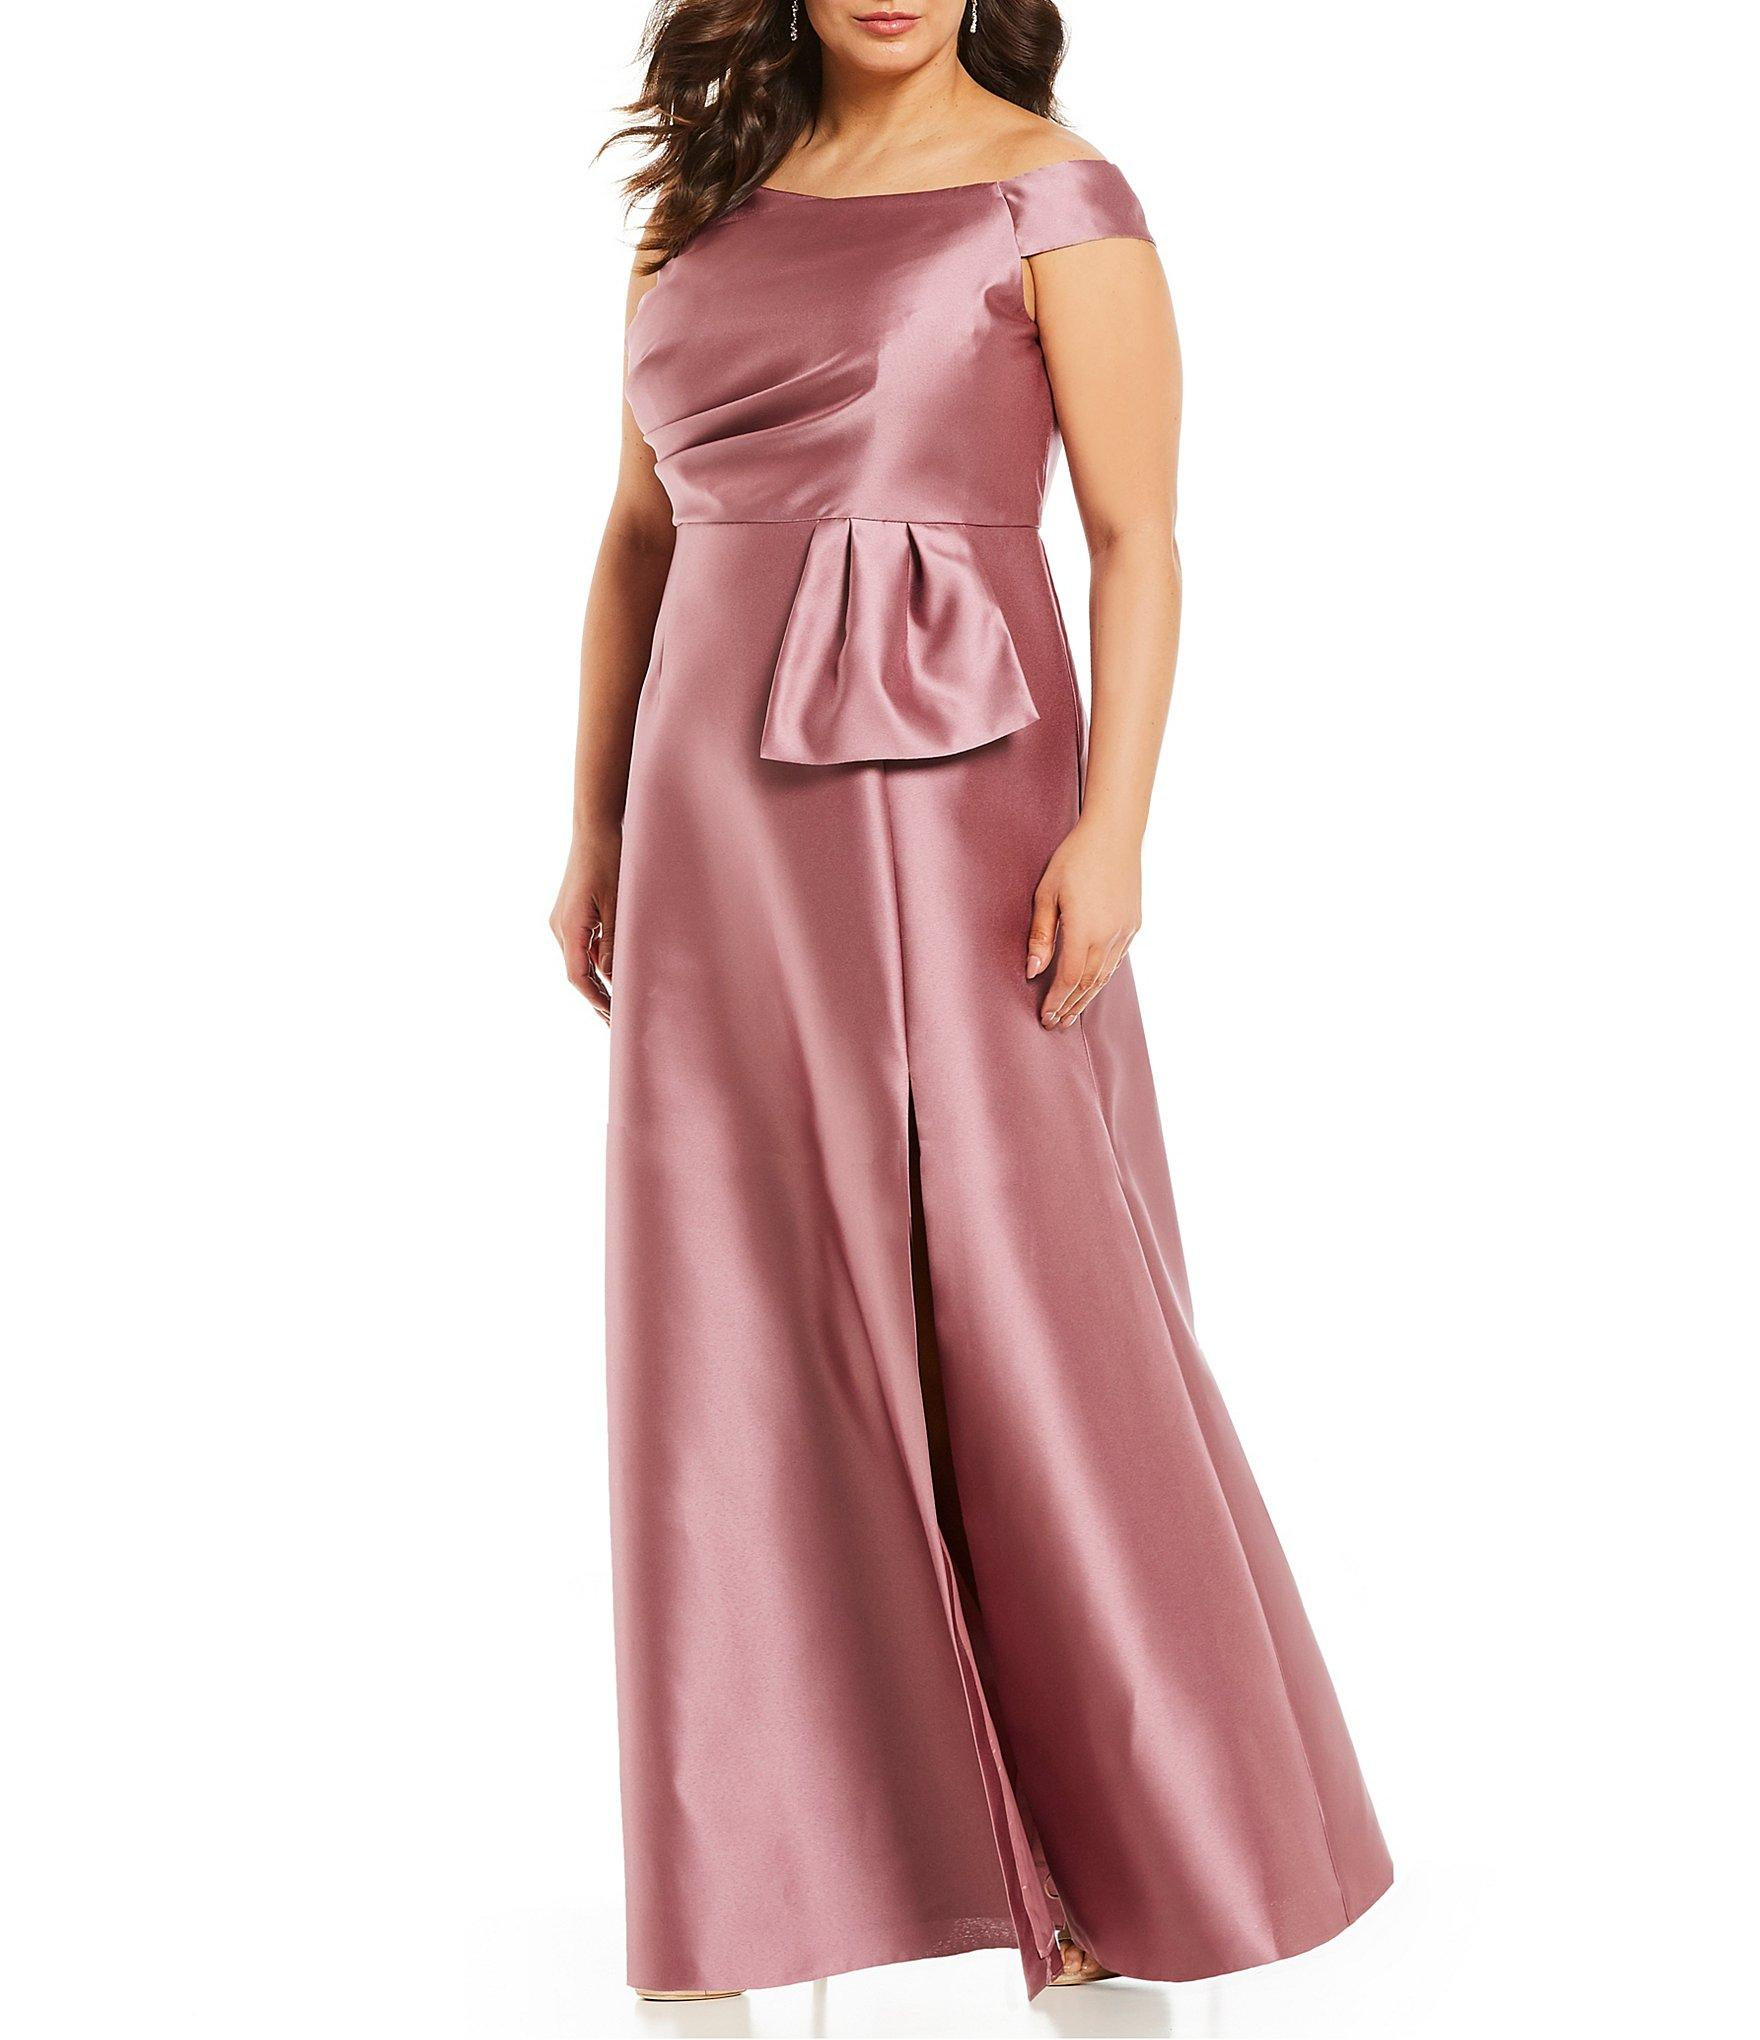 7f9ae71b9710f Lyst - Adrianna Papell Plus Size Off-the-shoulder Mikado Gown in ...